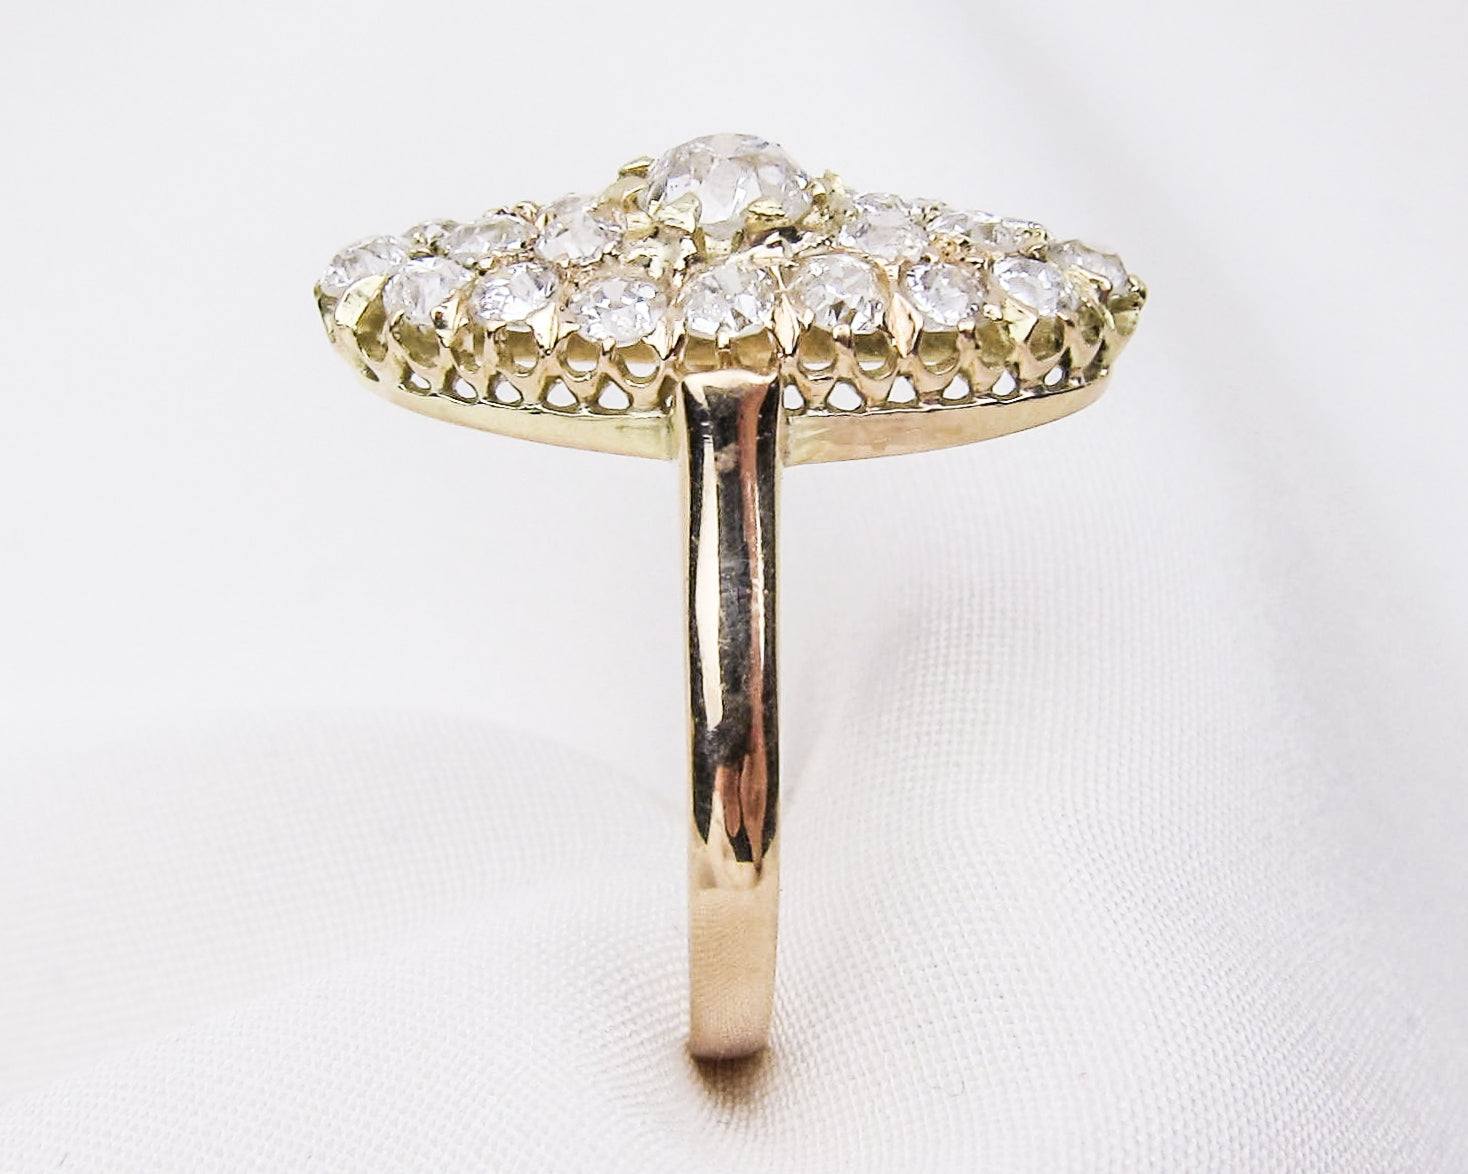 Victorian Navette-Shaped Diamond Ring